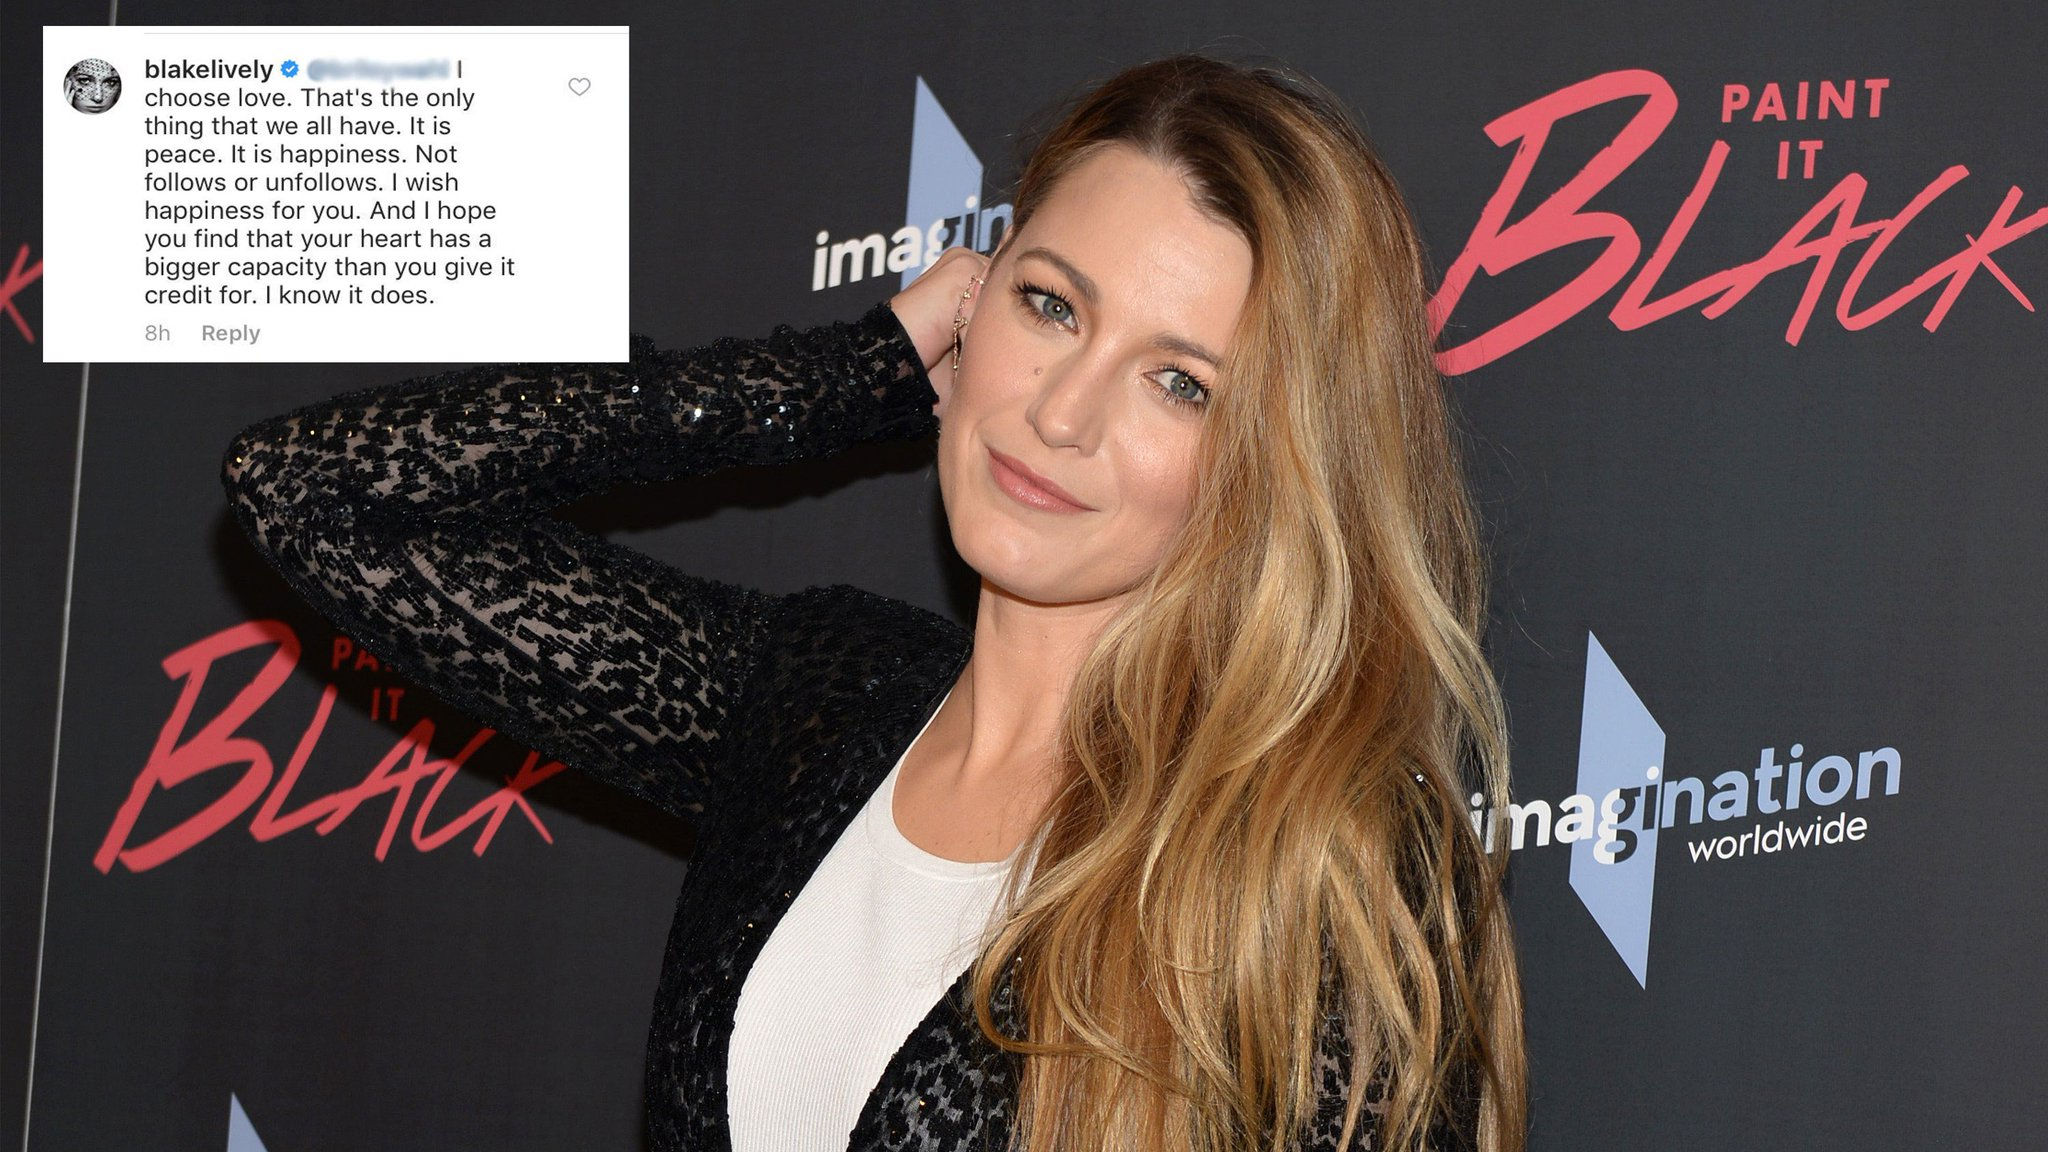 Blake Lively Only Has Love for Her Instagram Trolls https://t.co/VcWsAIBIhZ https://t.co/9GYSNcEJcI